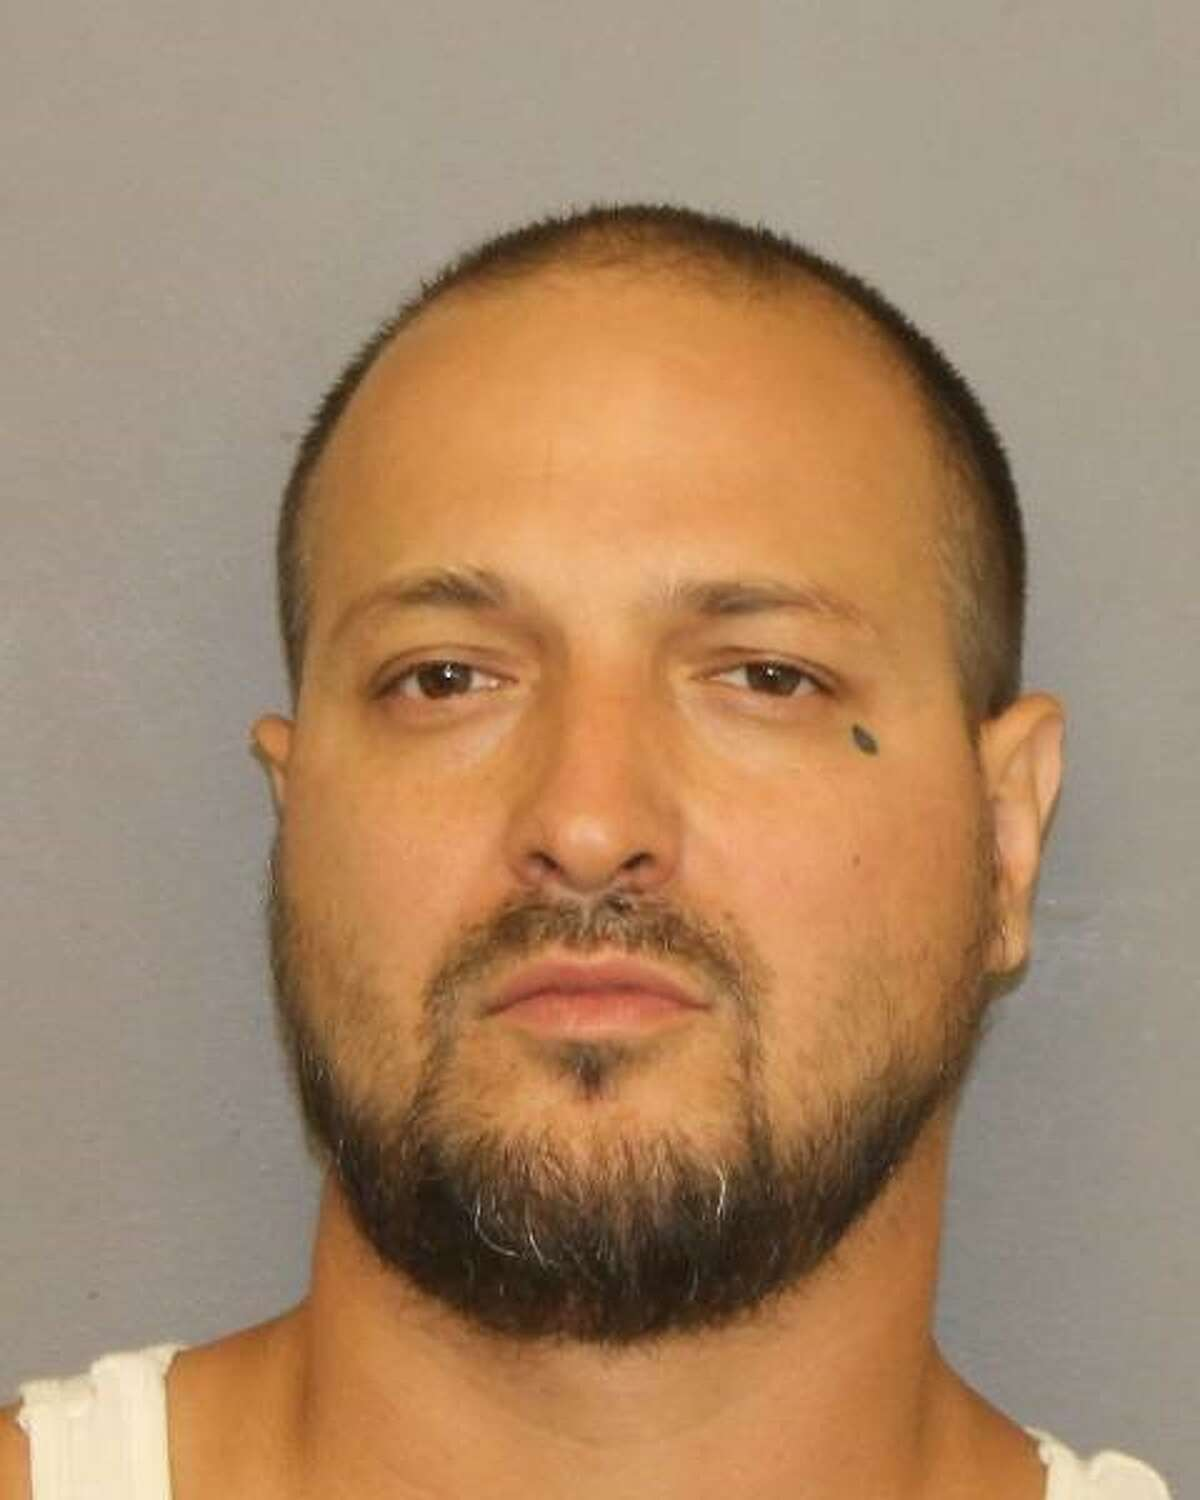 Jason Lee Sellie, is charged with first-degree assault and two counts of second-degree criminal possession of a weapon after a July 4, 2019, incident in Schenectady.